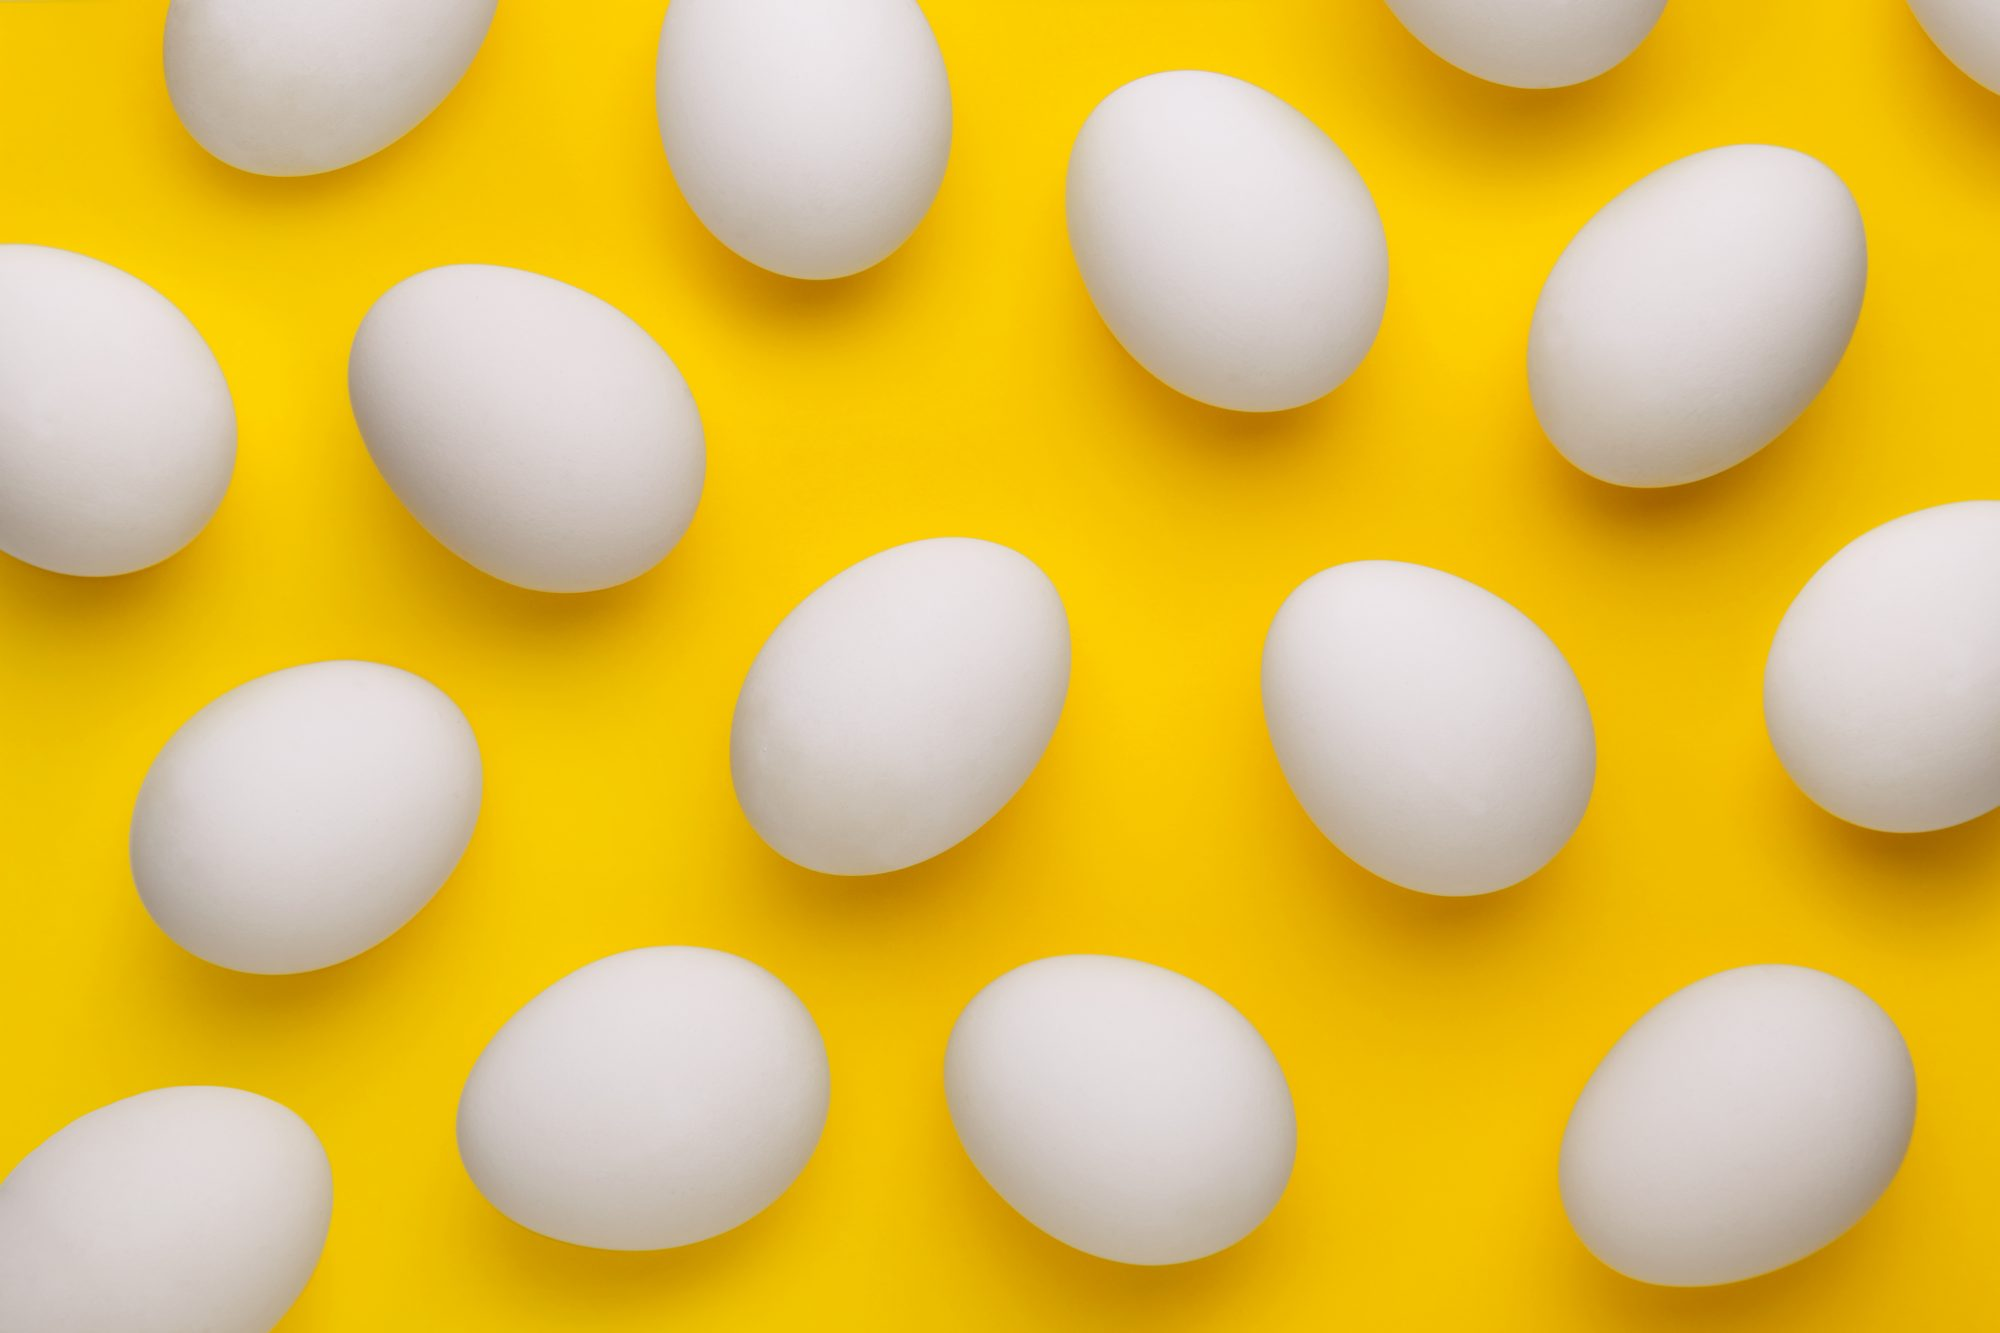 egg buying guide